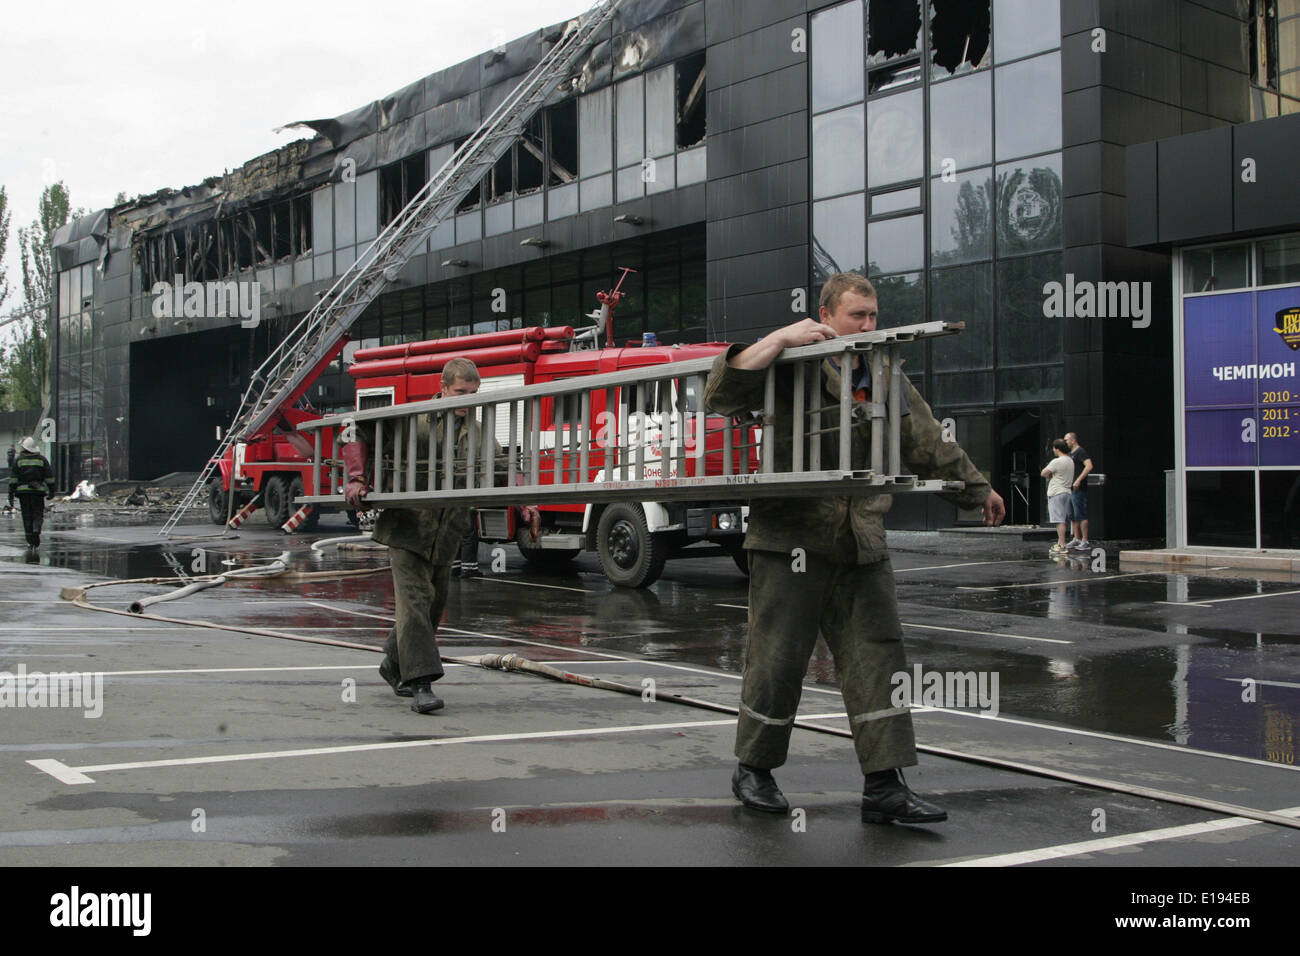 Donetsk, Ukraine. 27th May, 2014. Firefighters work at the burnt Druzhba Hockey Arena in Donetsk, Ukraine, May 27, 2014. Home arena of Donetsk hockey club 'Donbas' was burned at Monday night by unknown armed people. Credit:  Alexander Ermochenko/Xinhua/Alamy Live News - Stock Image